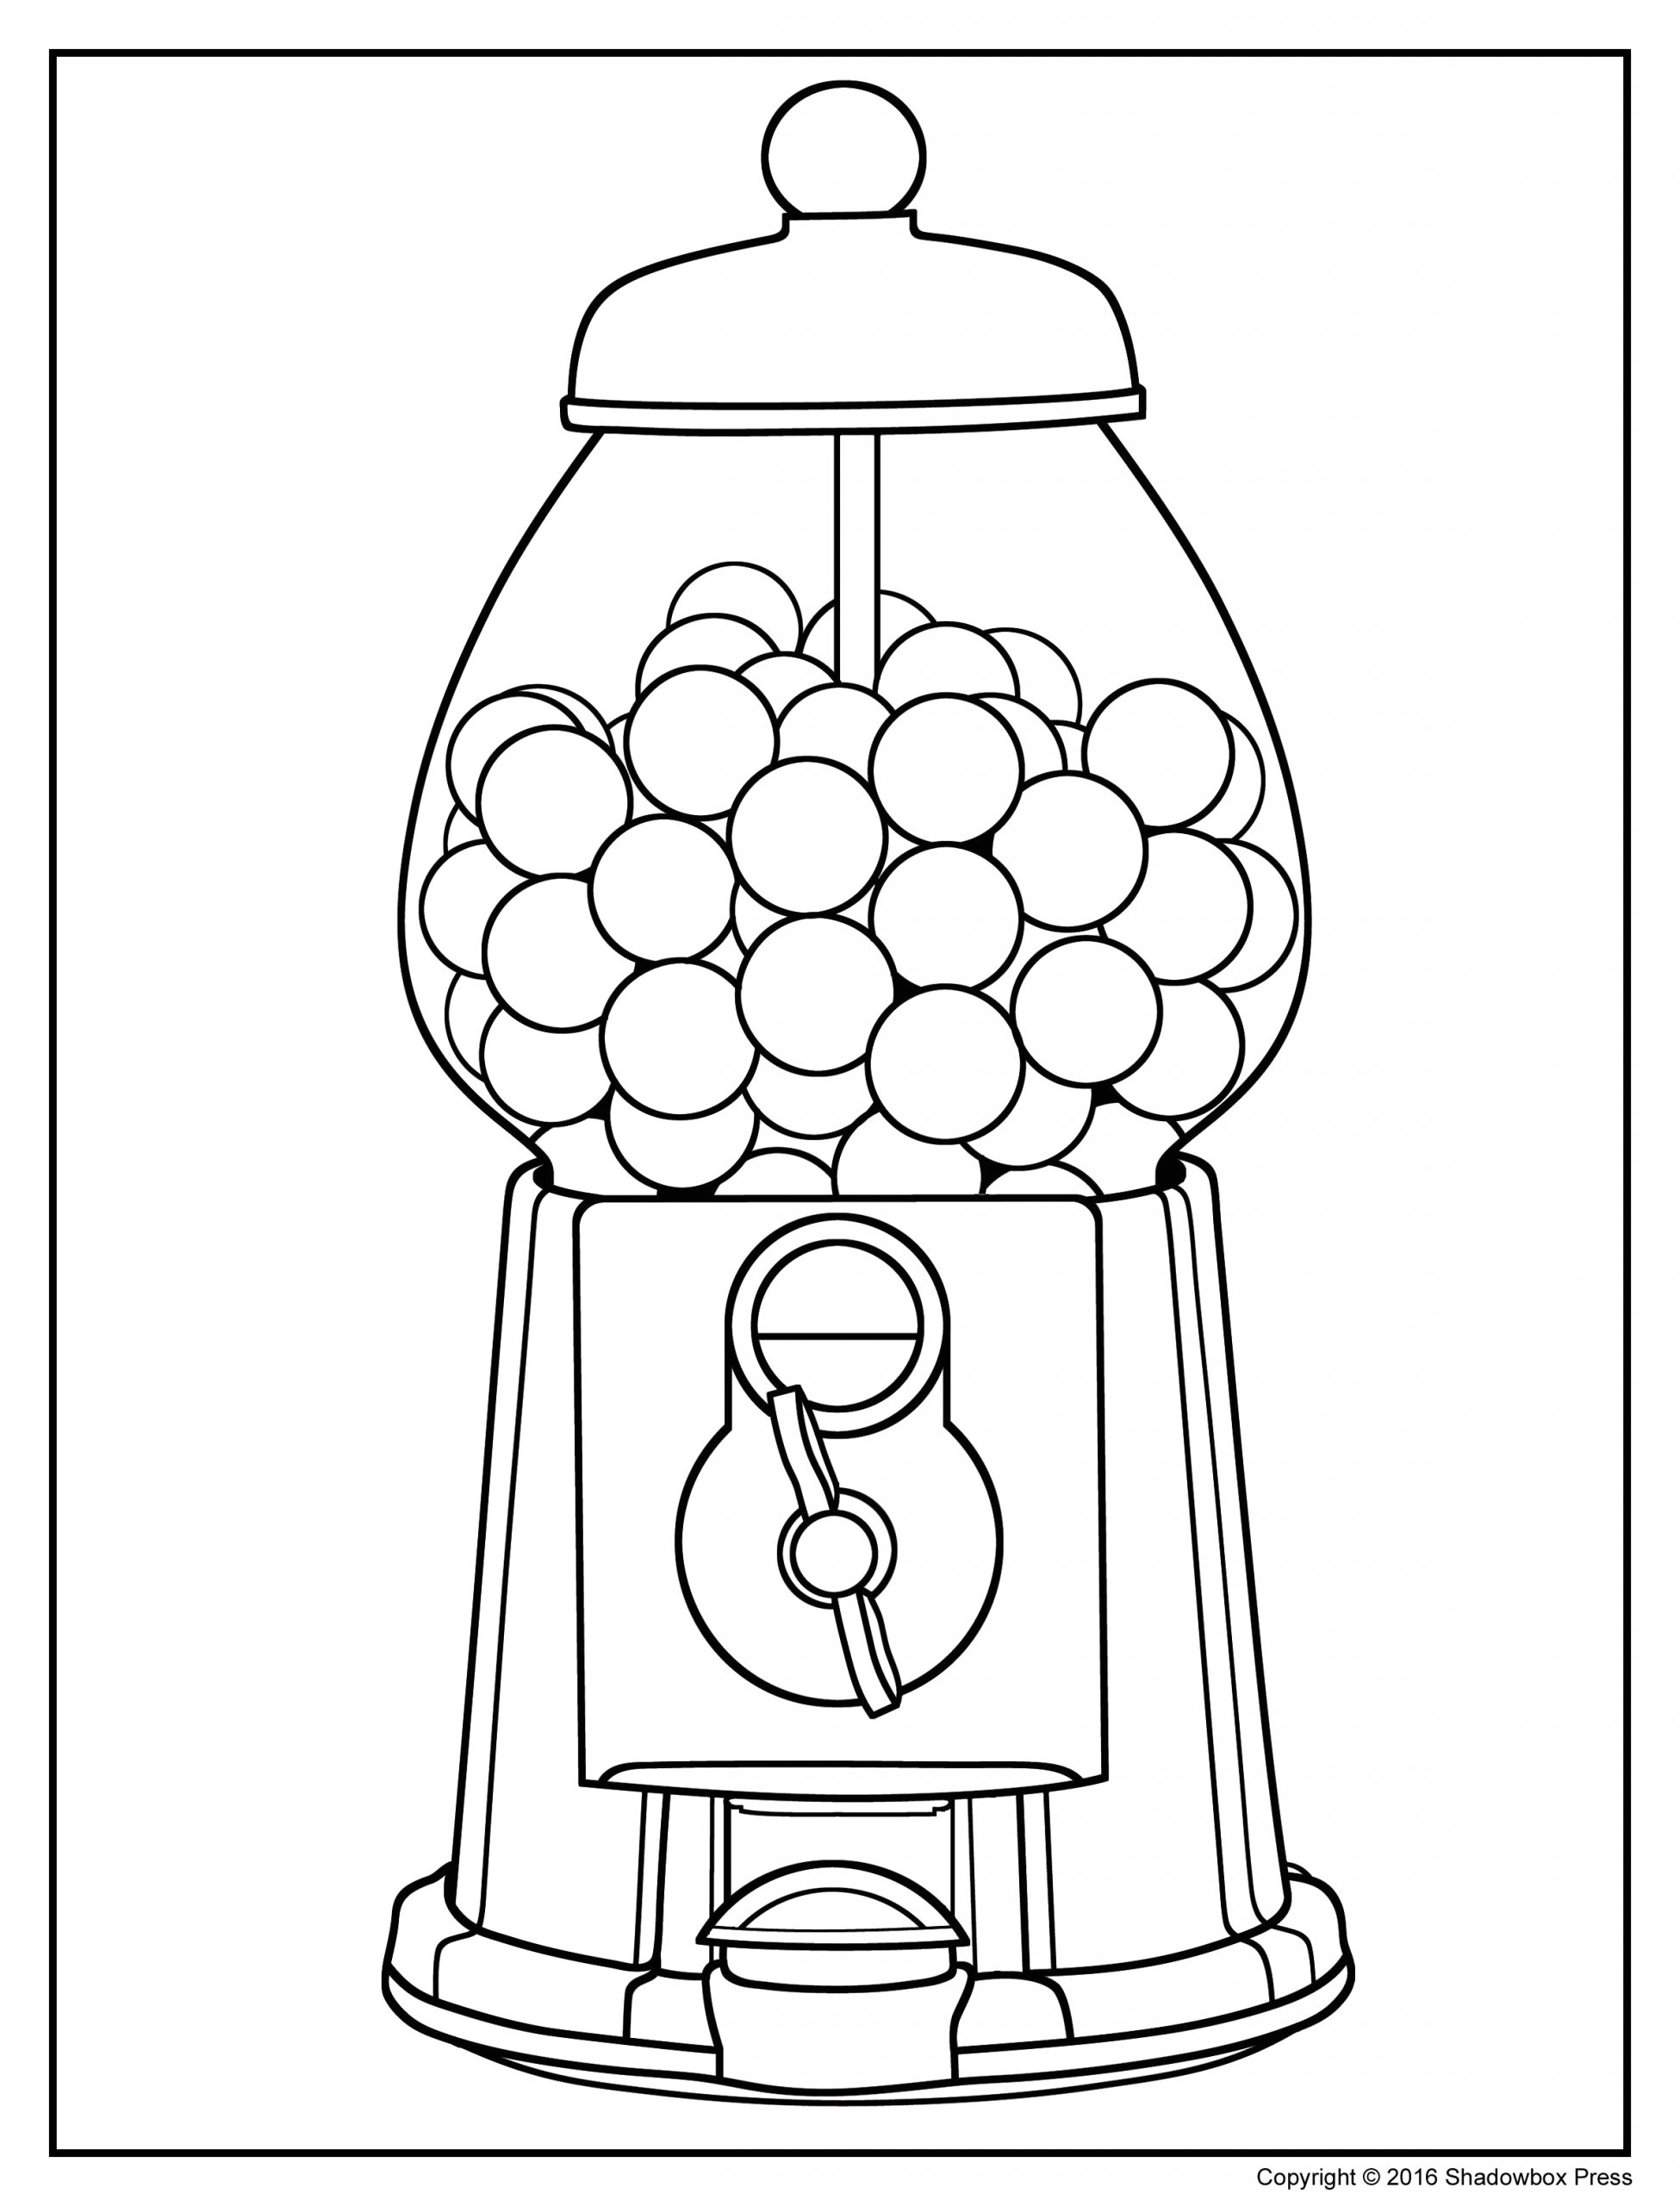 Easy Coloring Pages for Adults with Dementia Free Downloadable Coloring Pages for Adults at